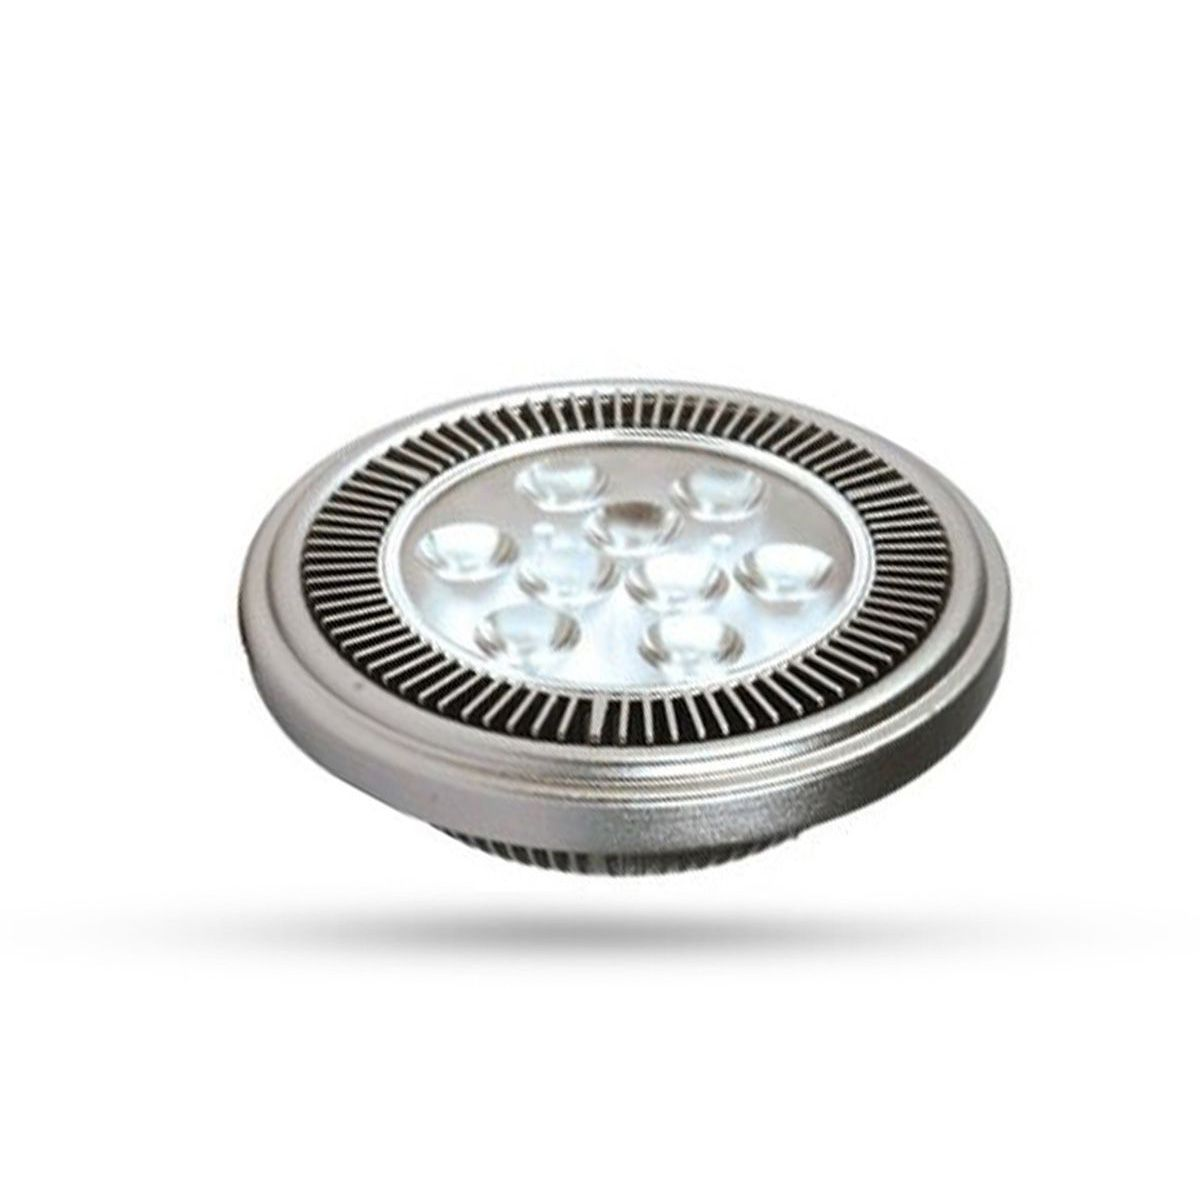 Lâmpada Power LED AR111 13W 3000K IP20 780 Lumens Bivolt - Brilia